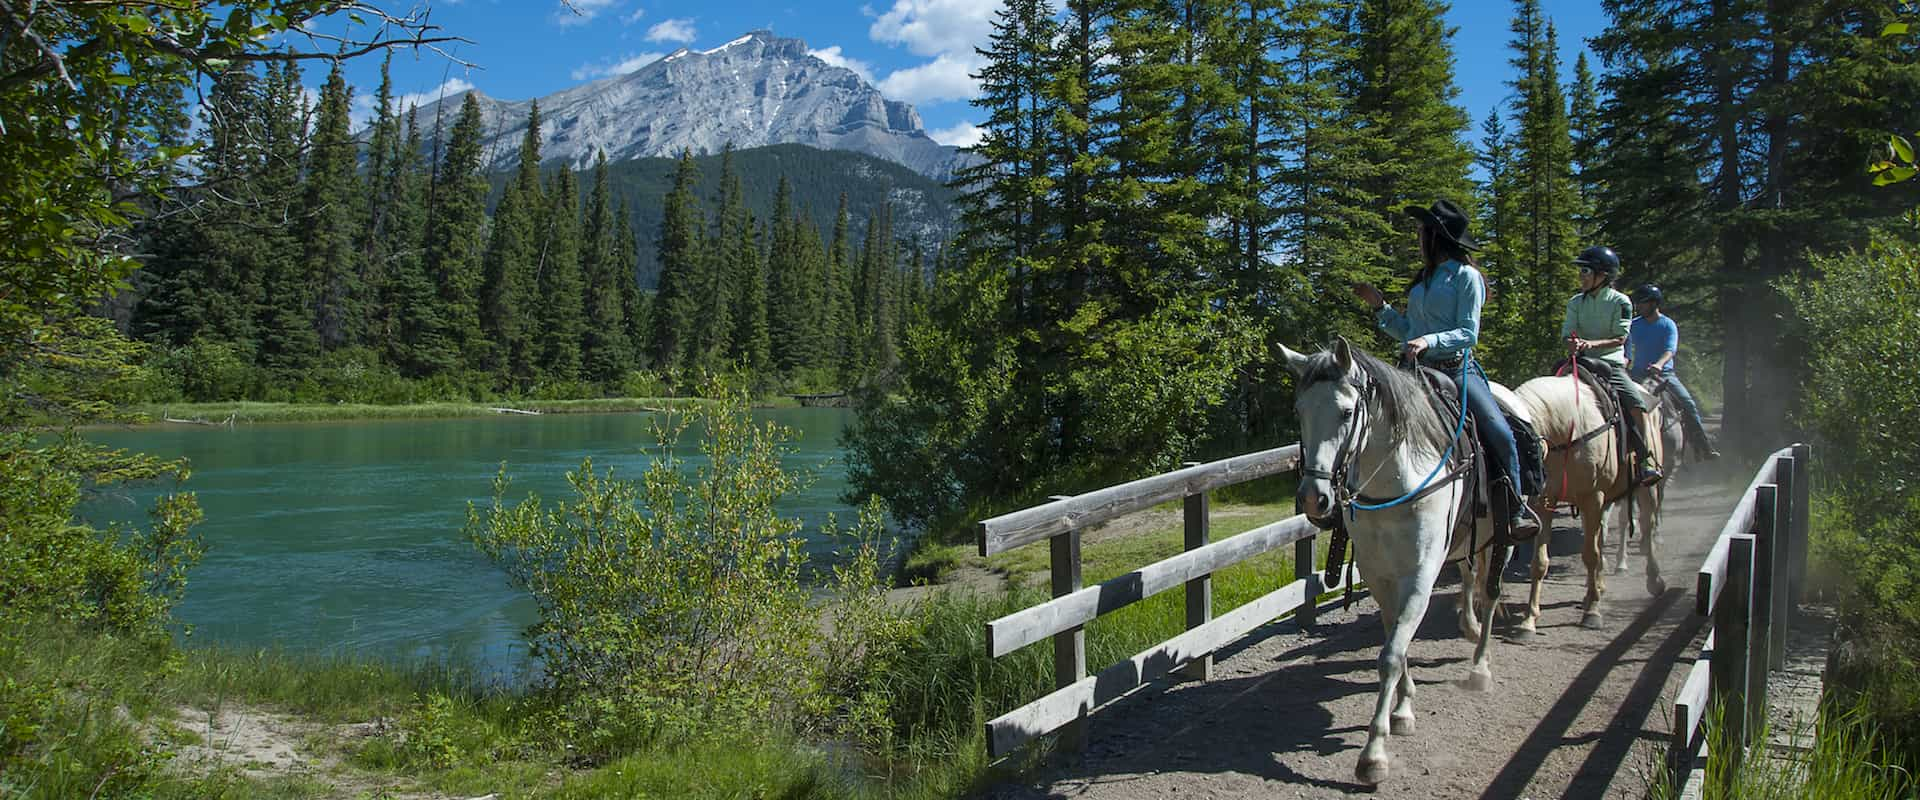 Ride along the Bow River on the Bow River Ride with Banff Trail Riders in the Canadian Rockies